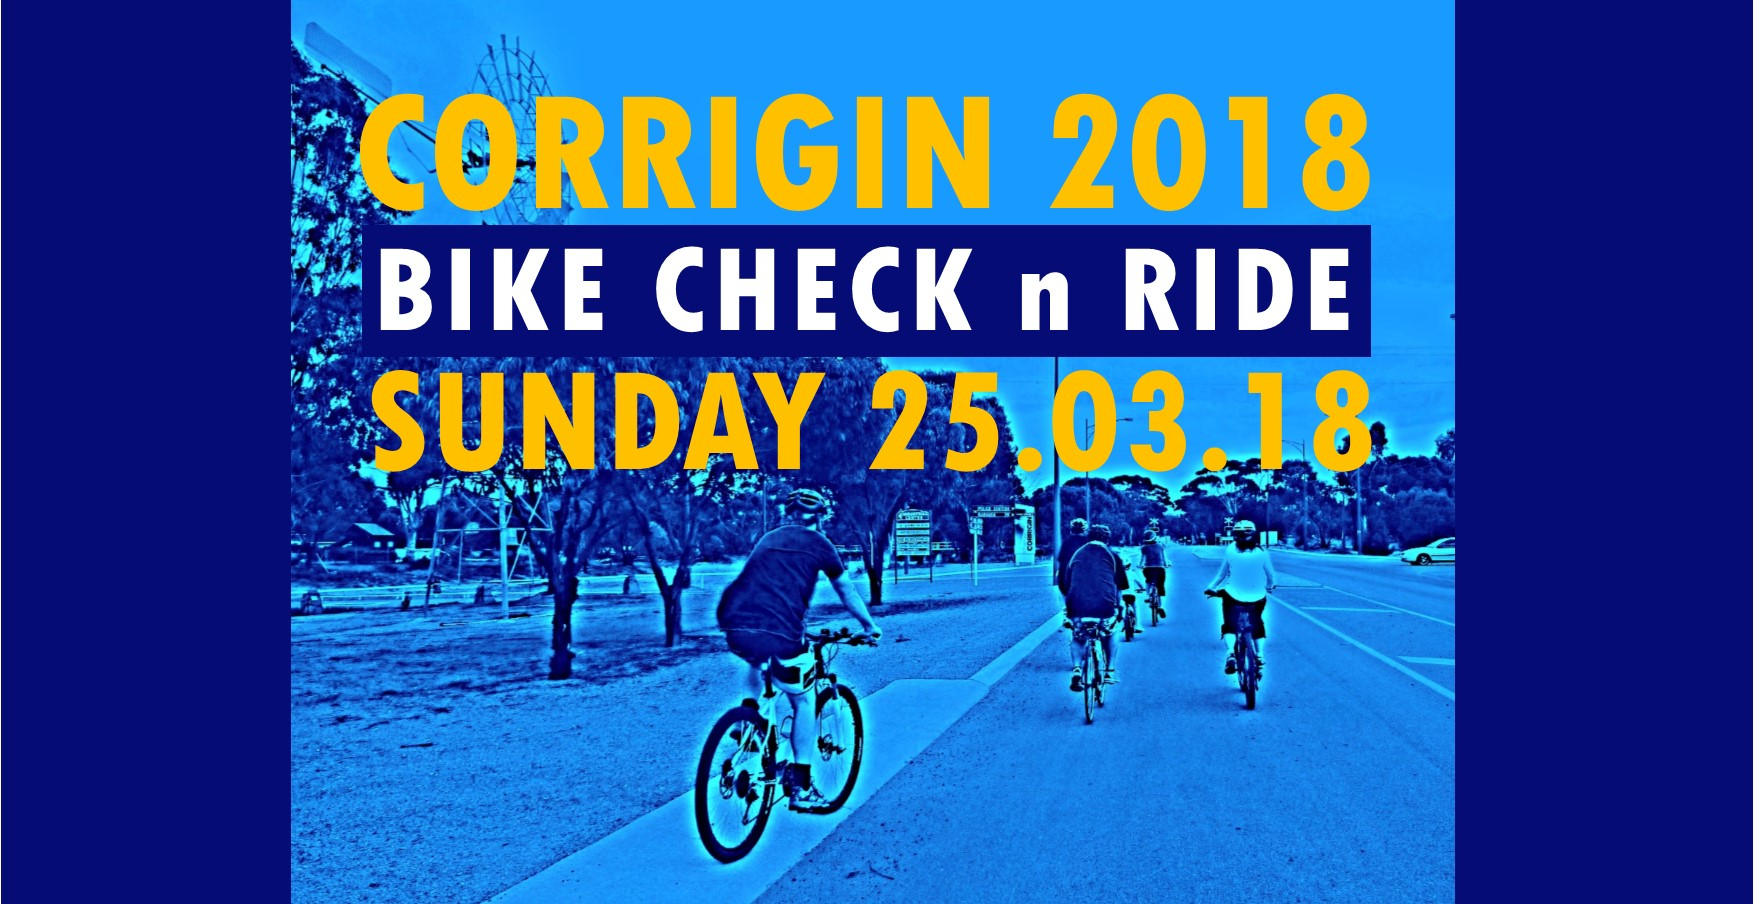 Image: CORRIGIN 2018 BIKE CHECK n RIDE